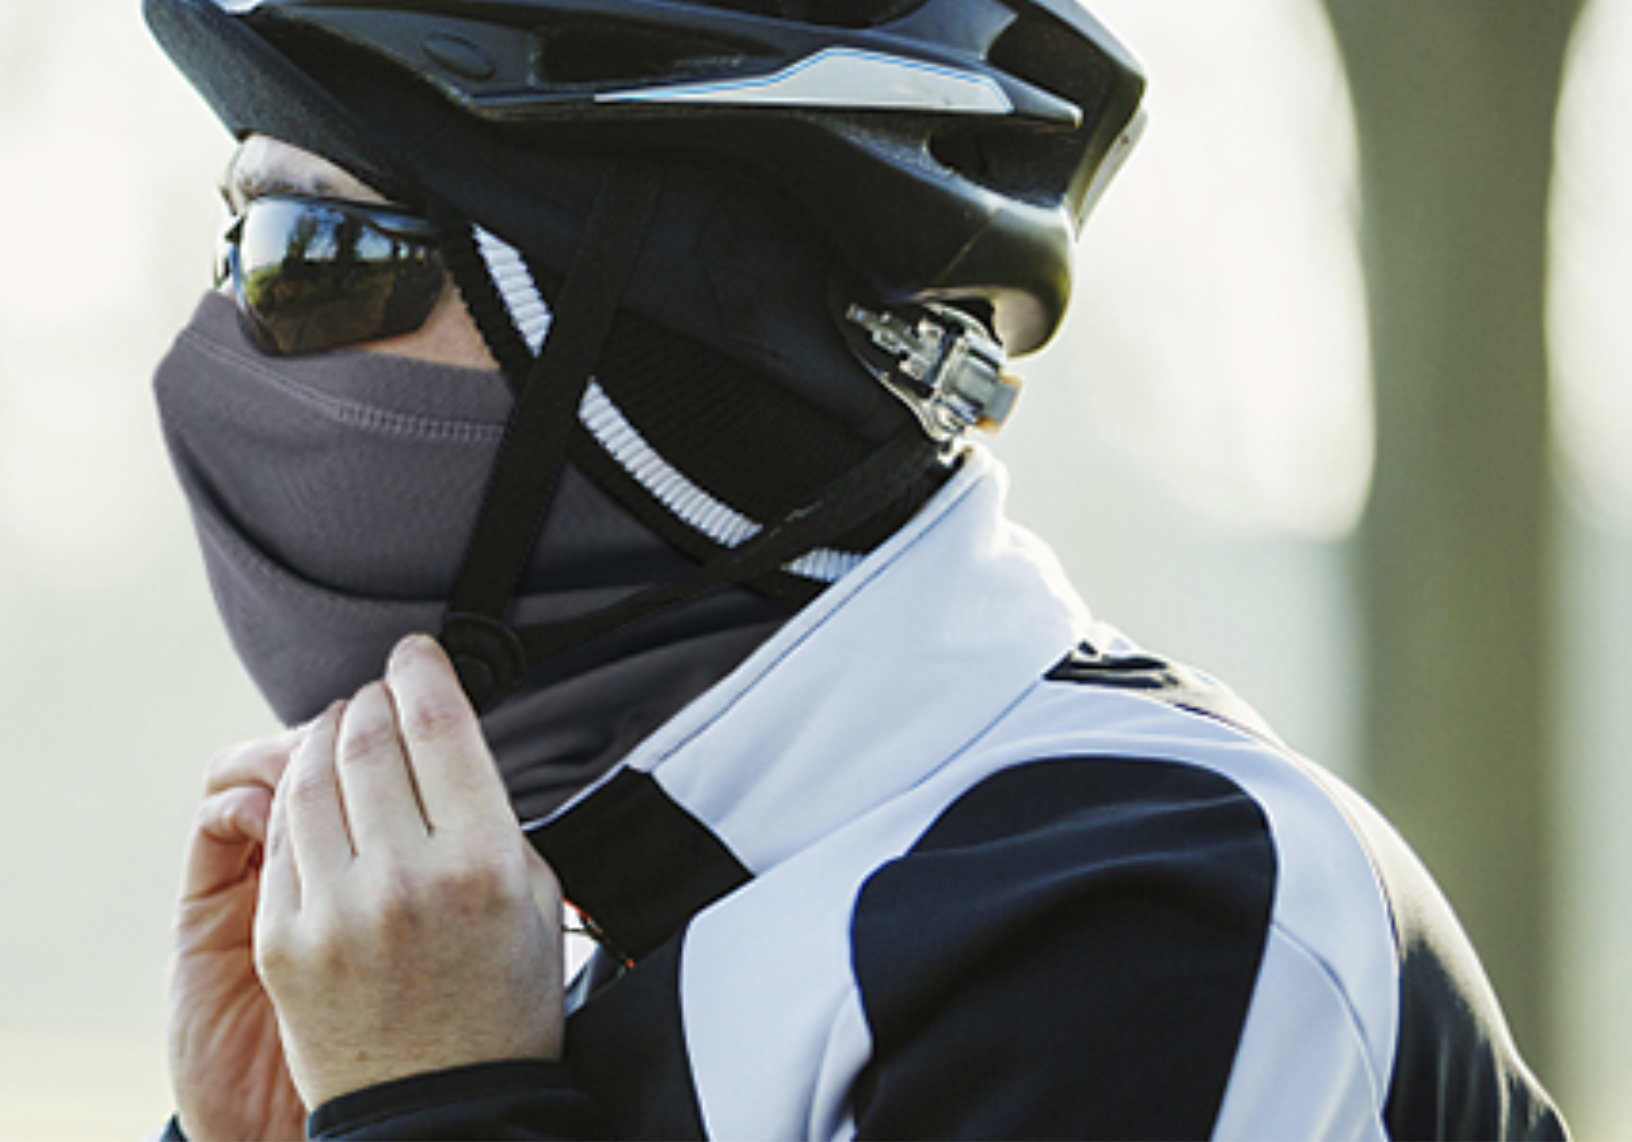 A model wearing the face covering under a helmet while riding a bike